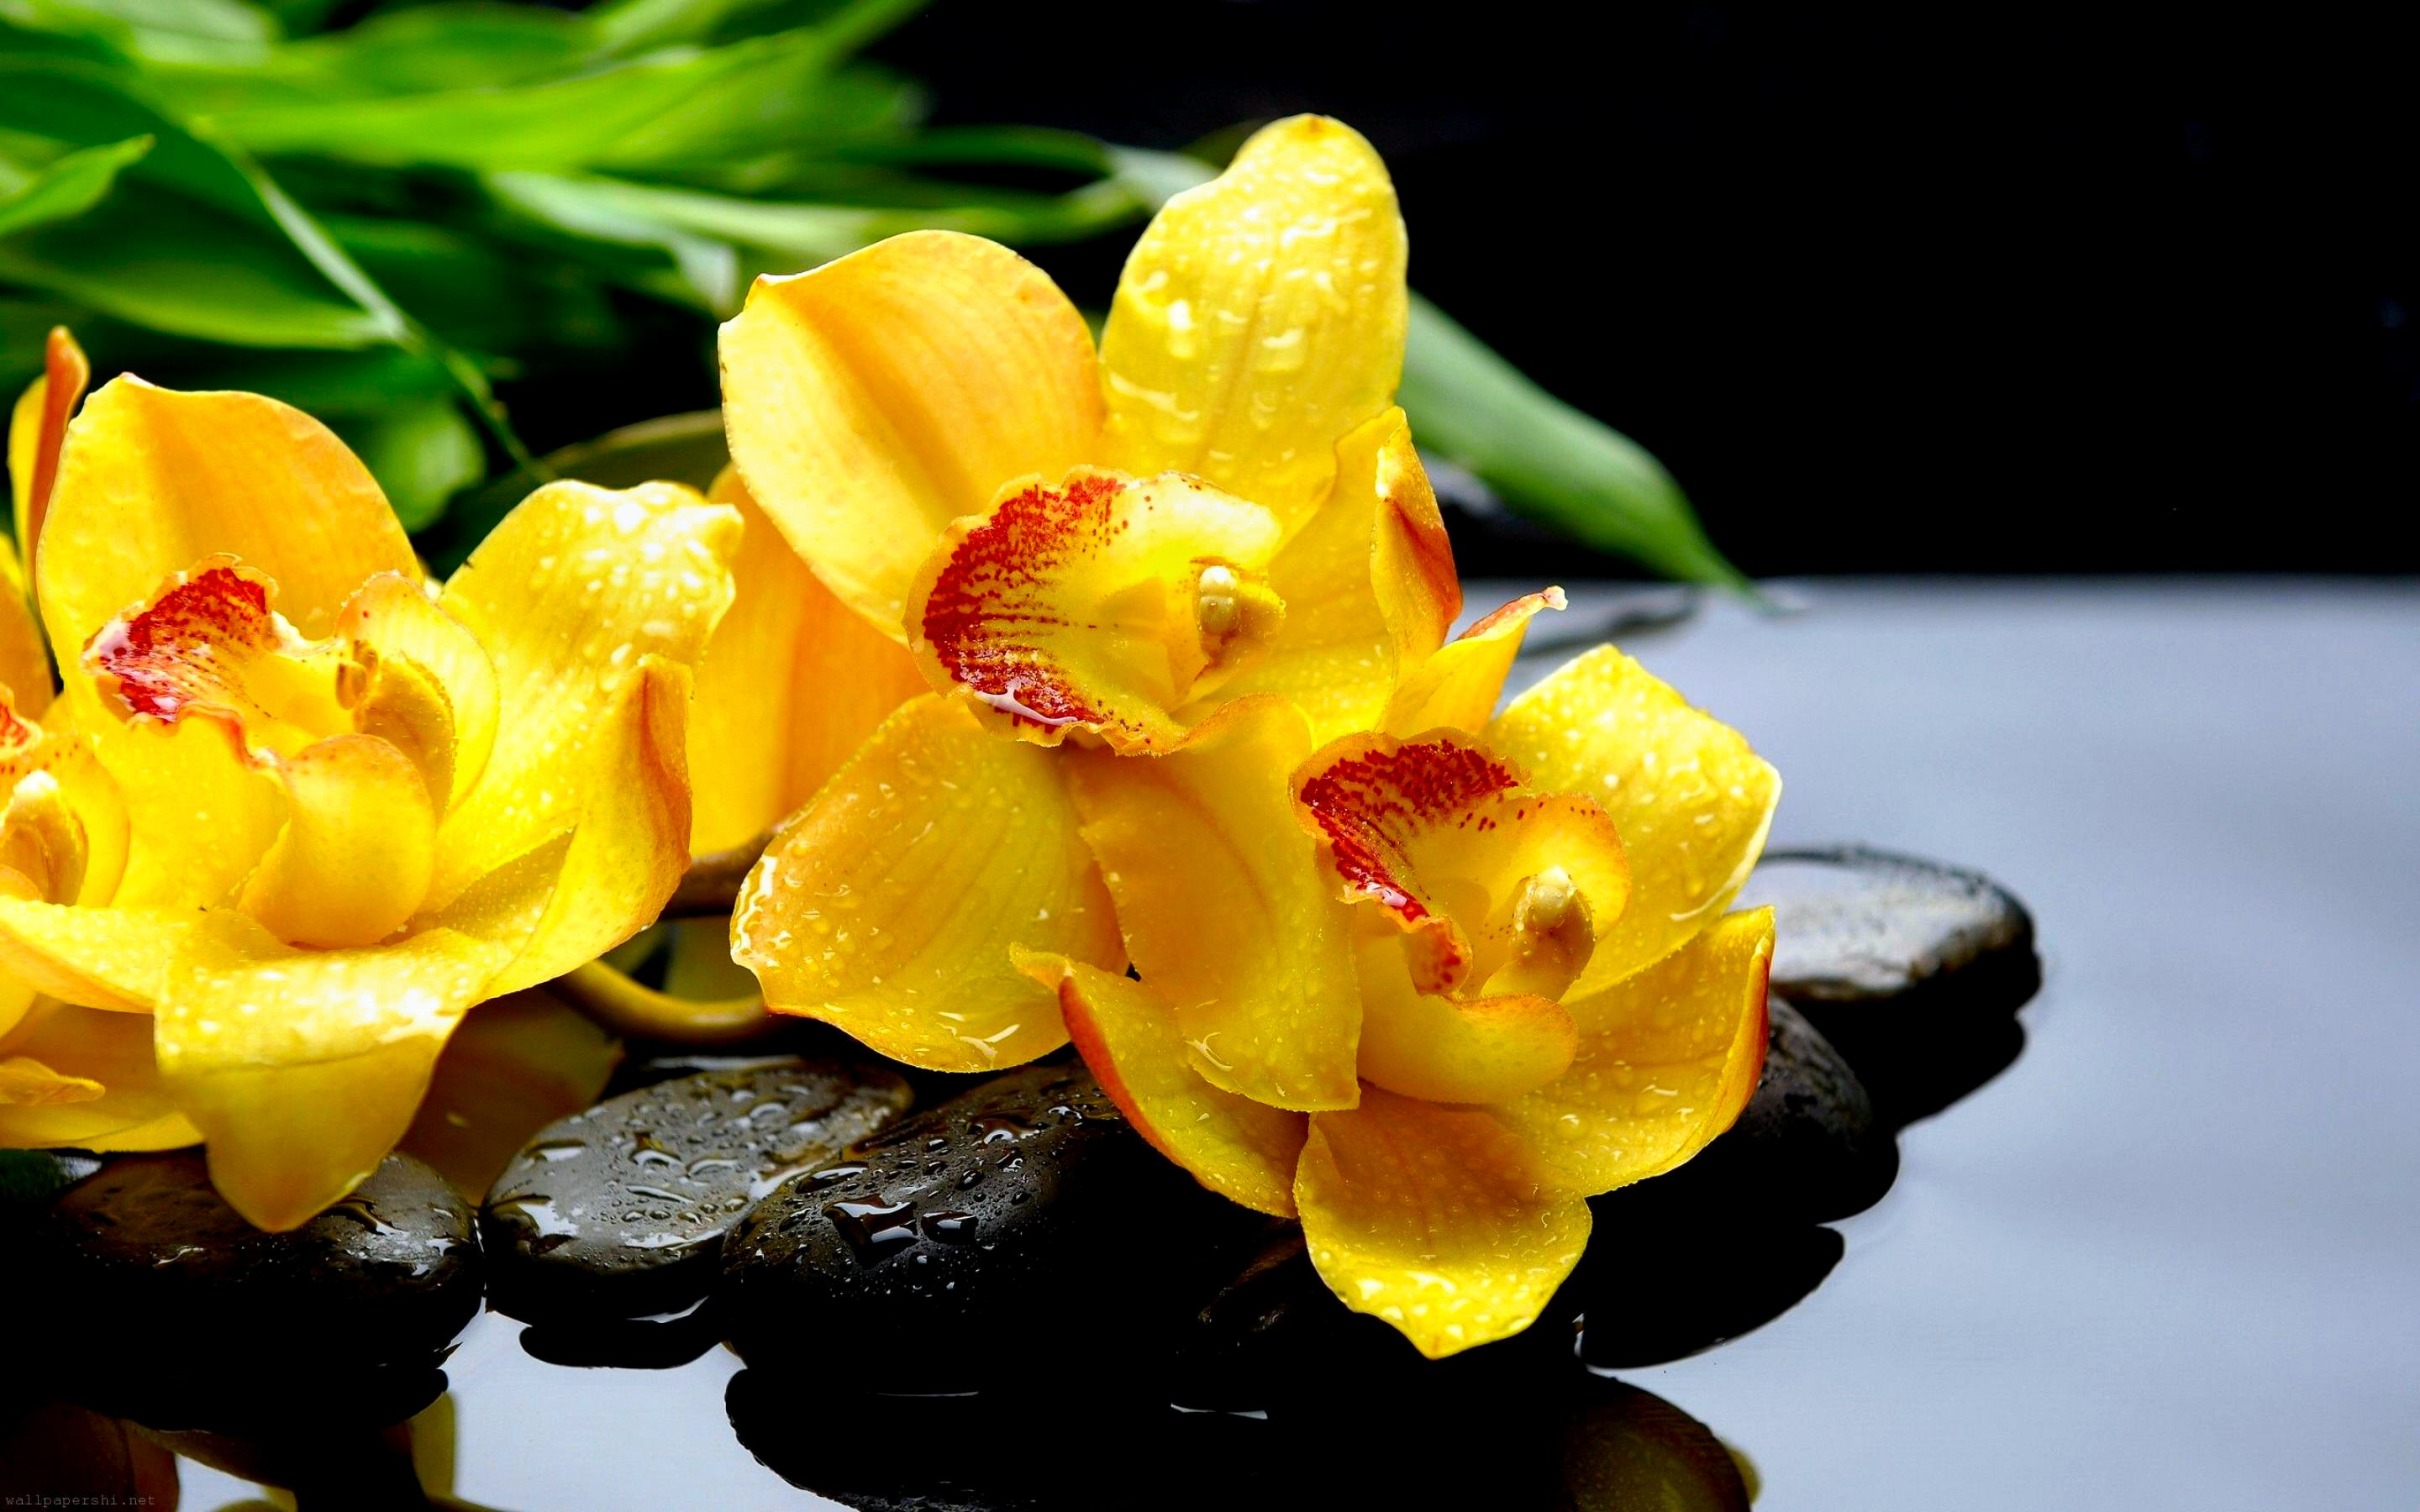 Wallpaper orchidee steine  FLOWER [14] orchids zenstyle [04december2012tuesday] [023711 ...